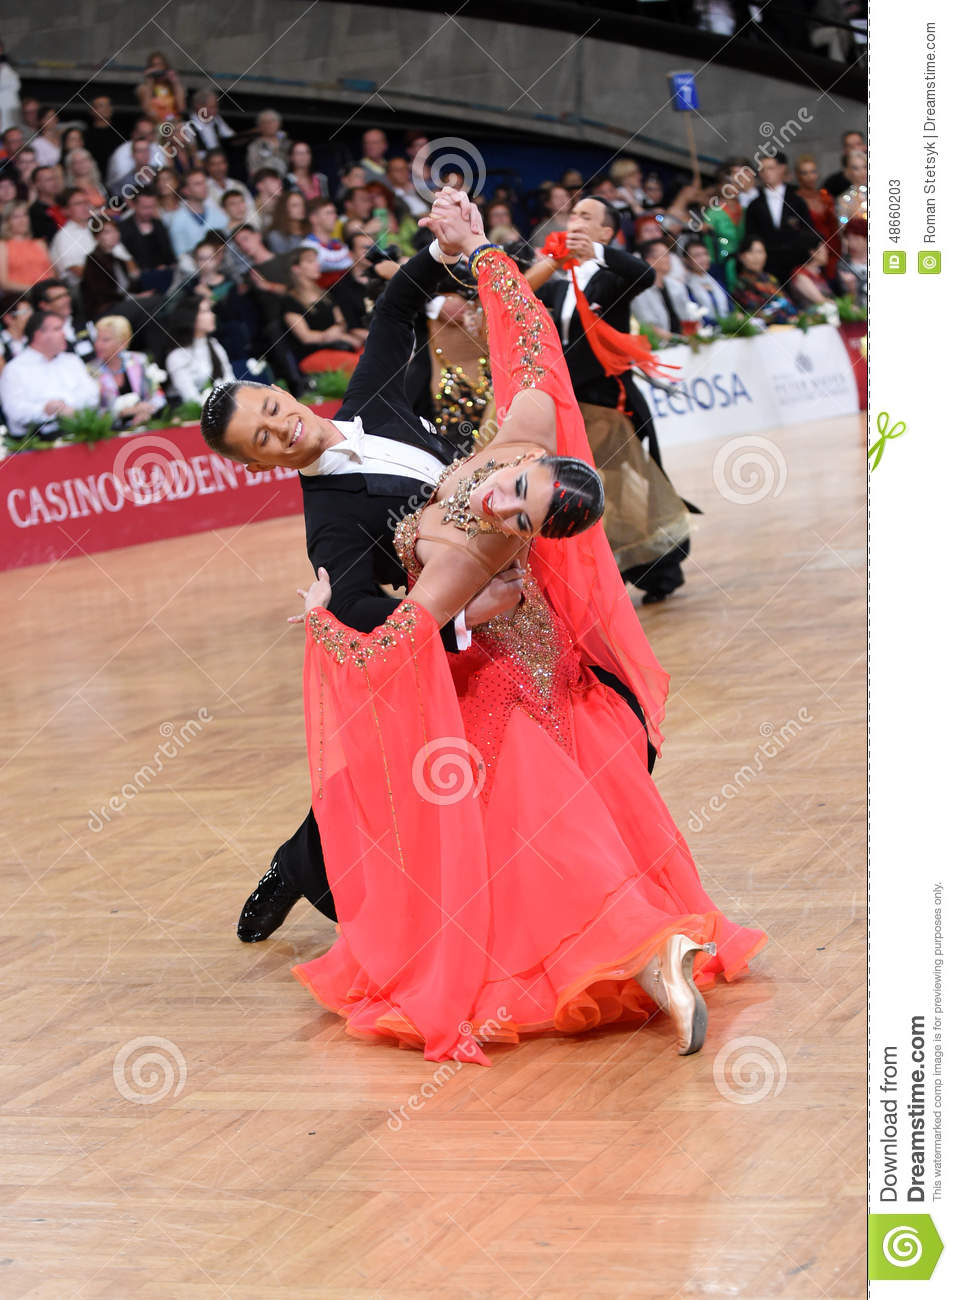 Our squad gathers for portal visitors only the best images on demand cheap ballroom dance dresses uk